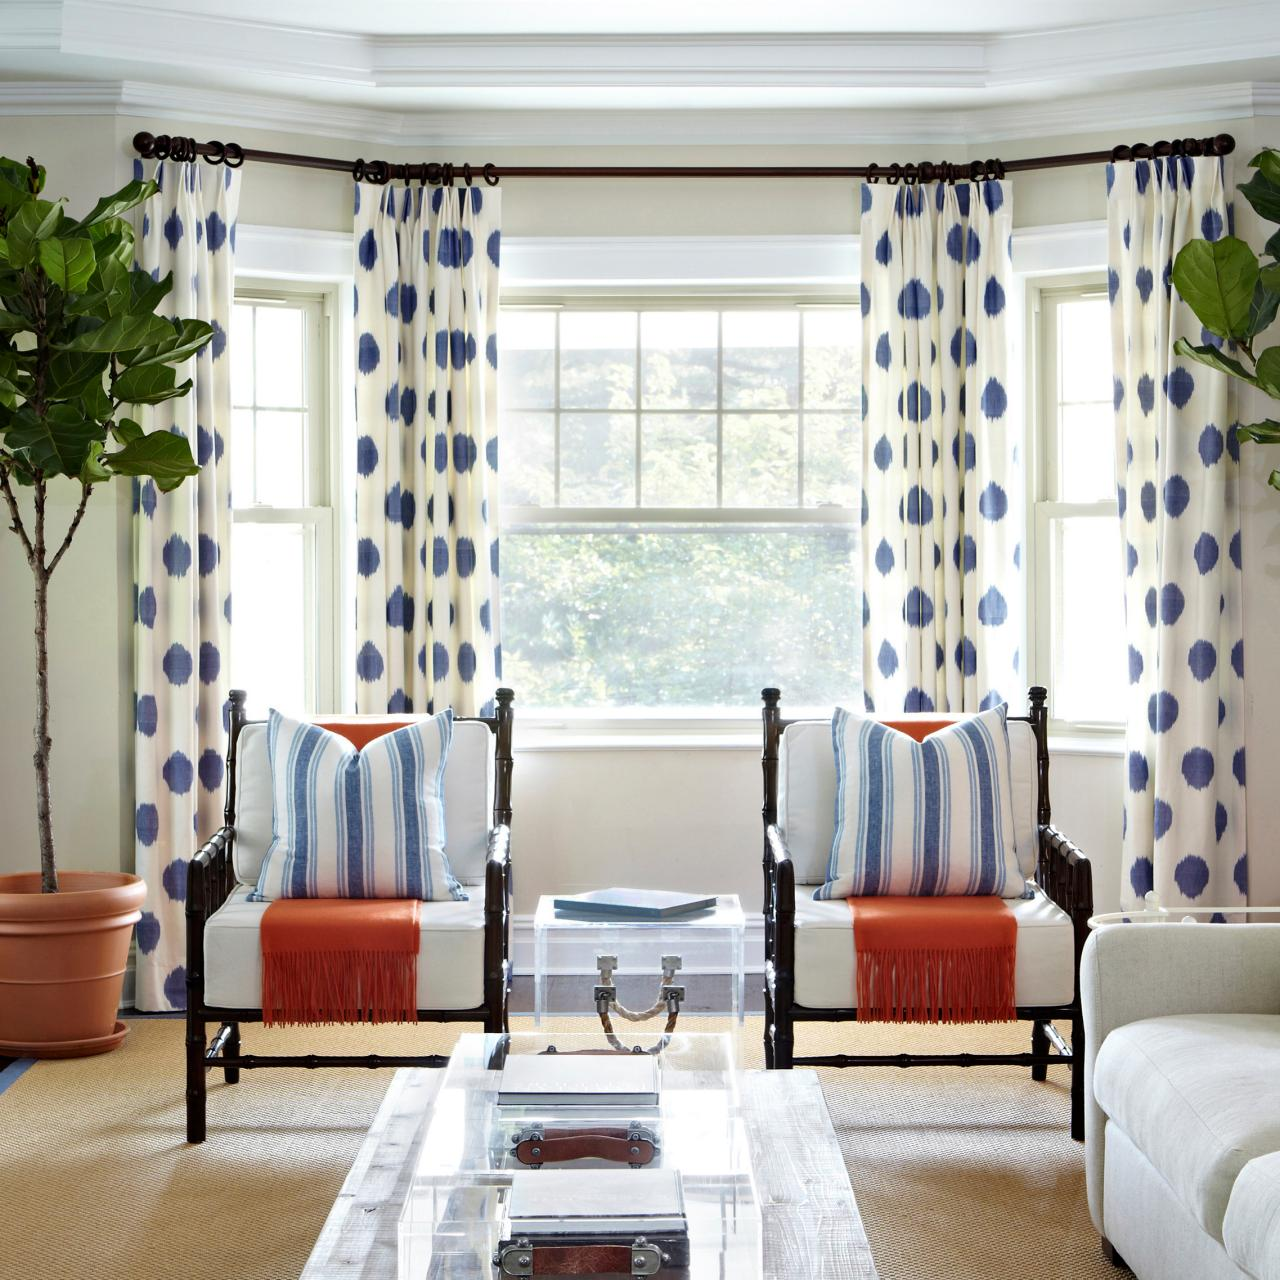 Summer Window Treatment Ideas | HGTV\'s Decorating & Design Blog | HGTV